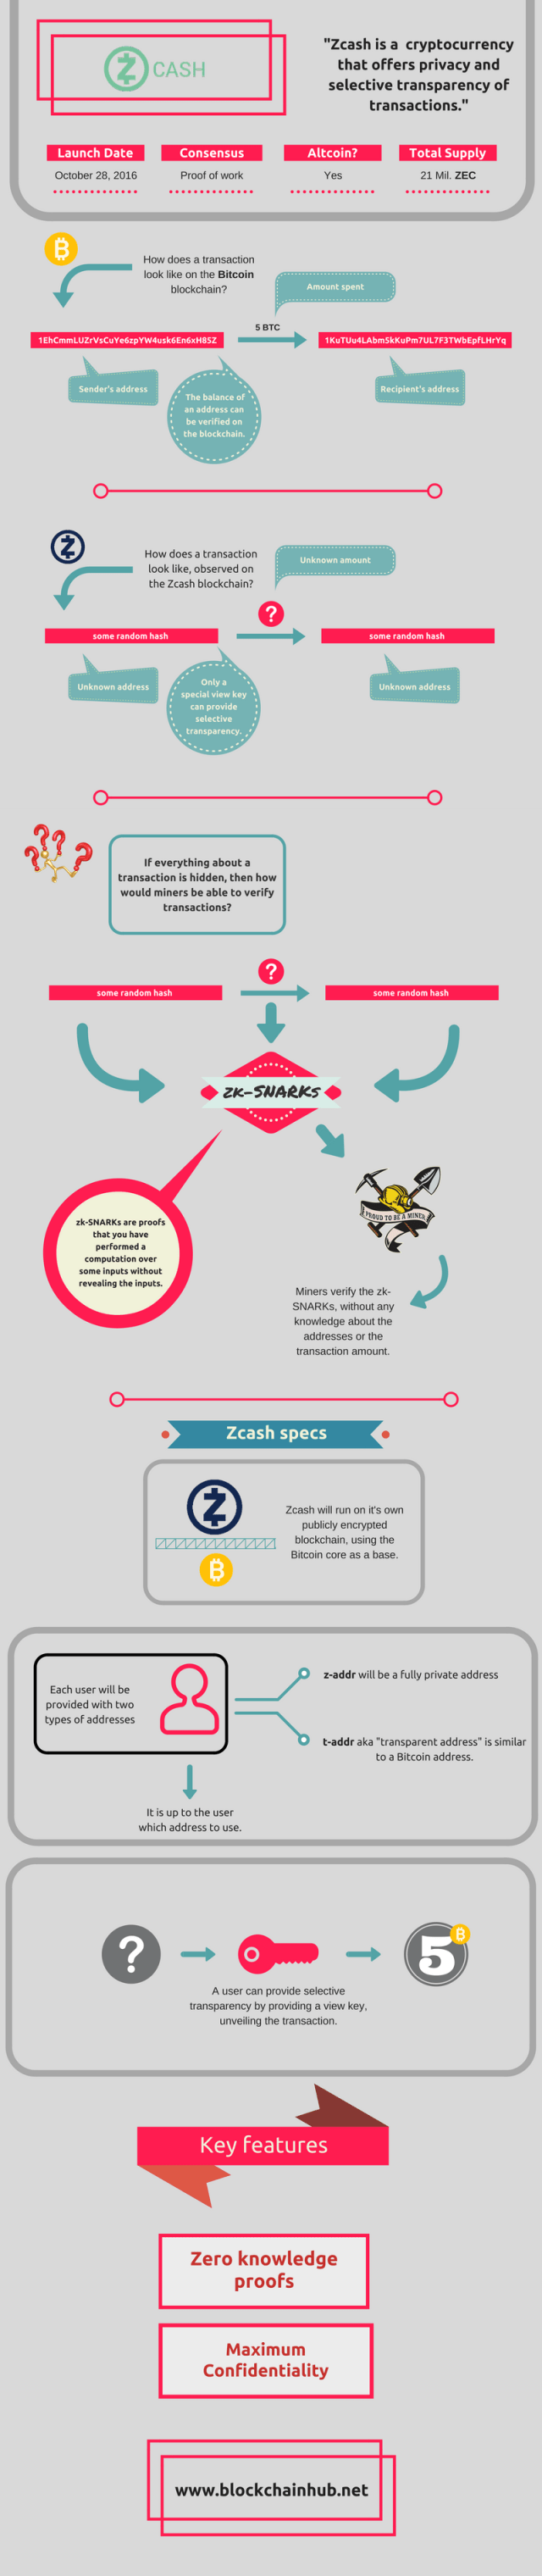 Zcash explained infographic